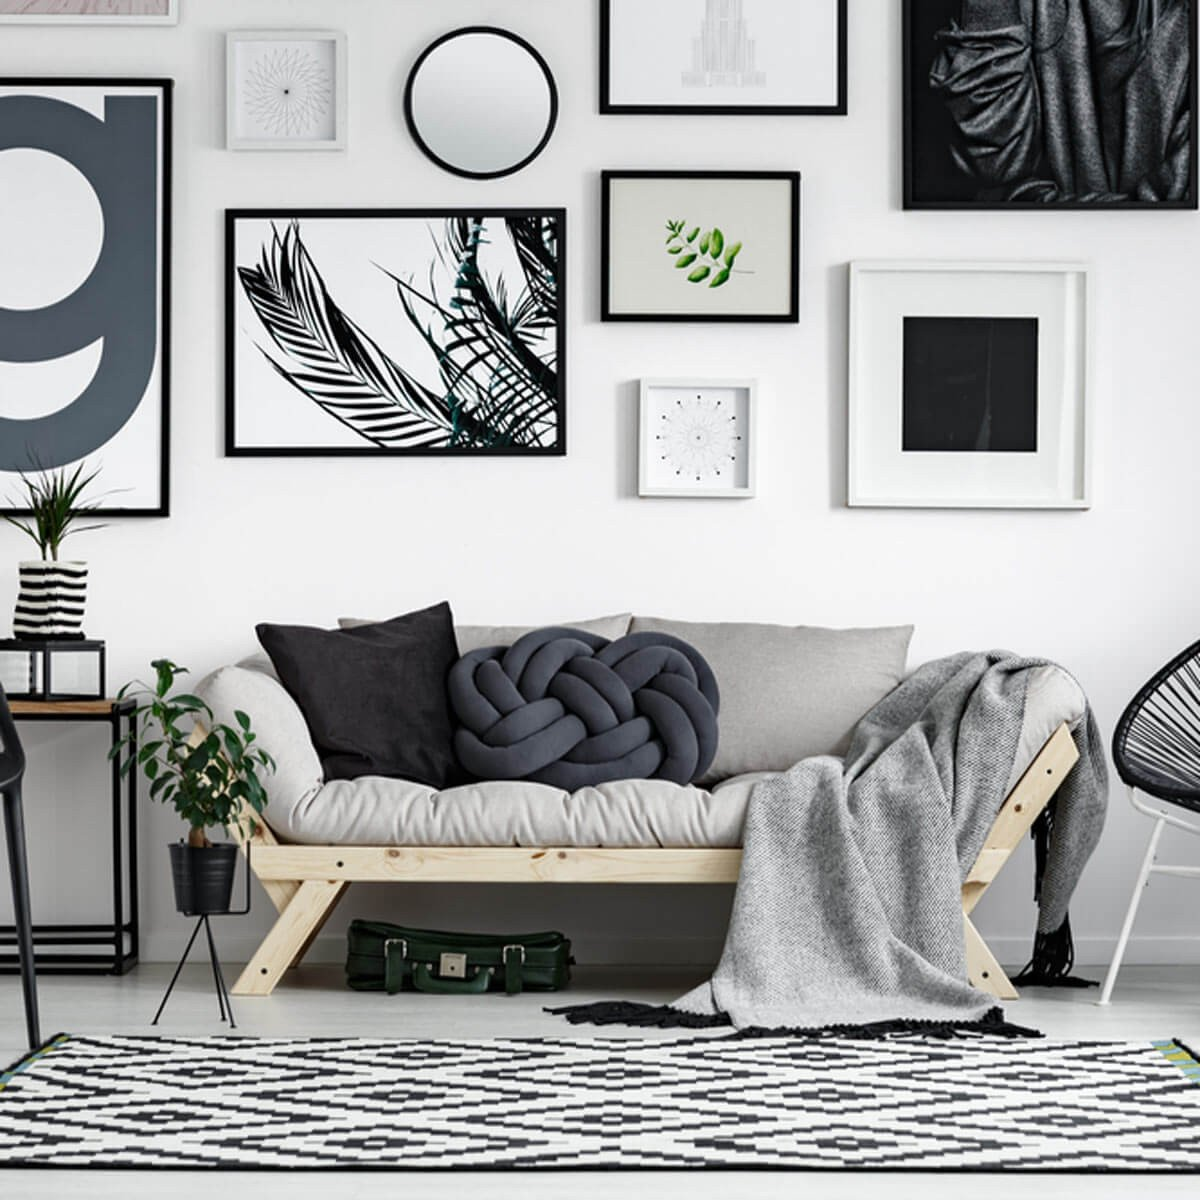 Home Decor Wall Art Ideas Best Of 25 Trends In Home Decor for 2018